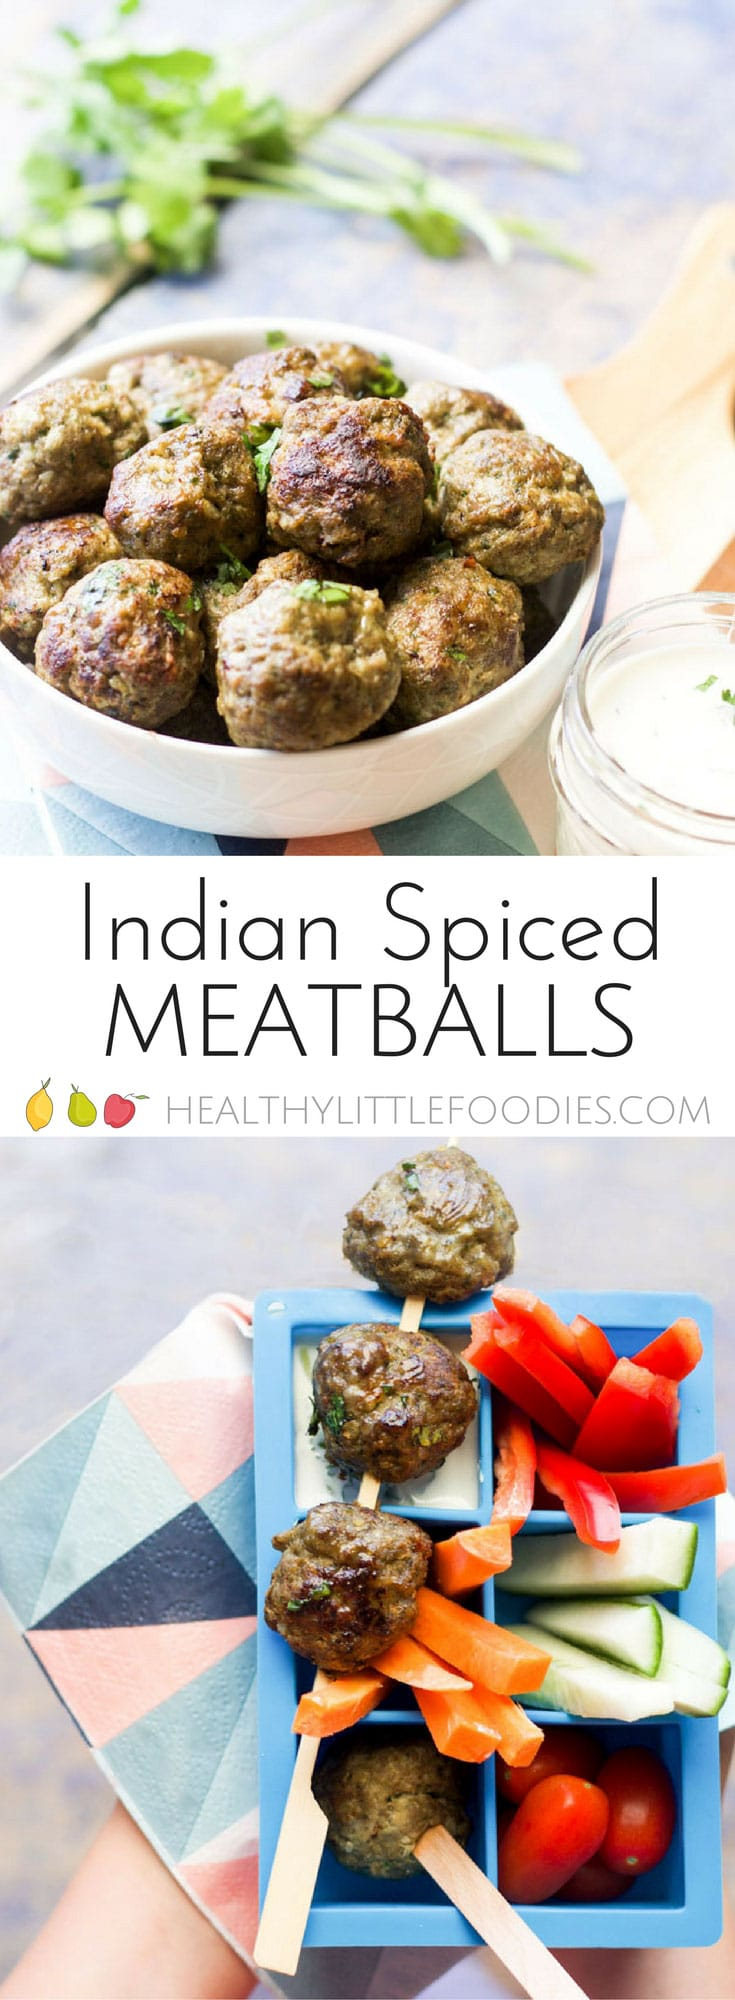 Lamb mince, spices & spinach are mixed together and then formed into balls to make theses Indian Spiced Meatballs. Great for baby-led weaning, kids & adults. #kidslunchideas #kidsfood #kidfood #babyledweaning